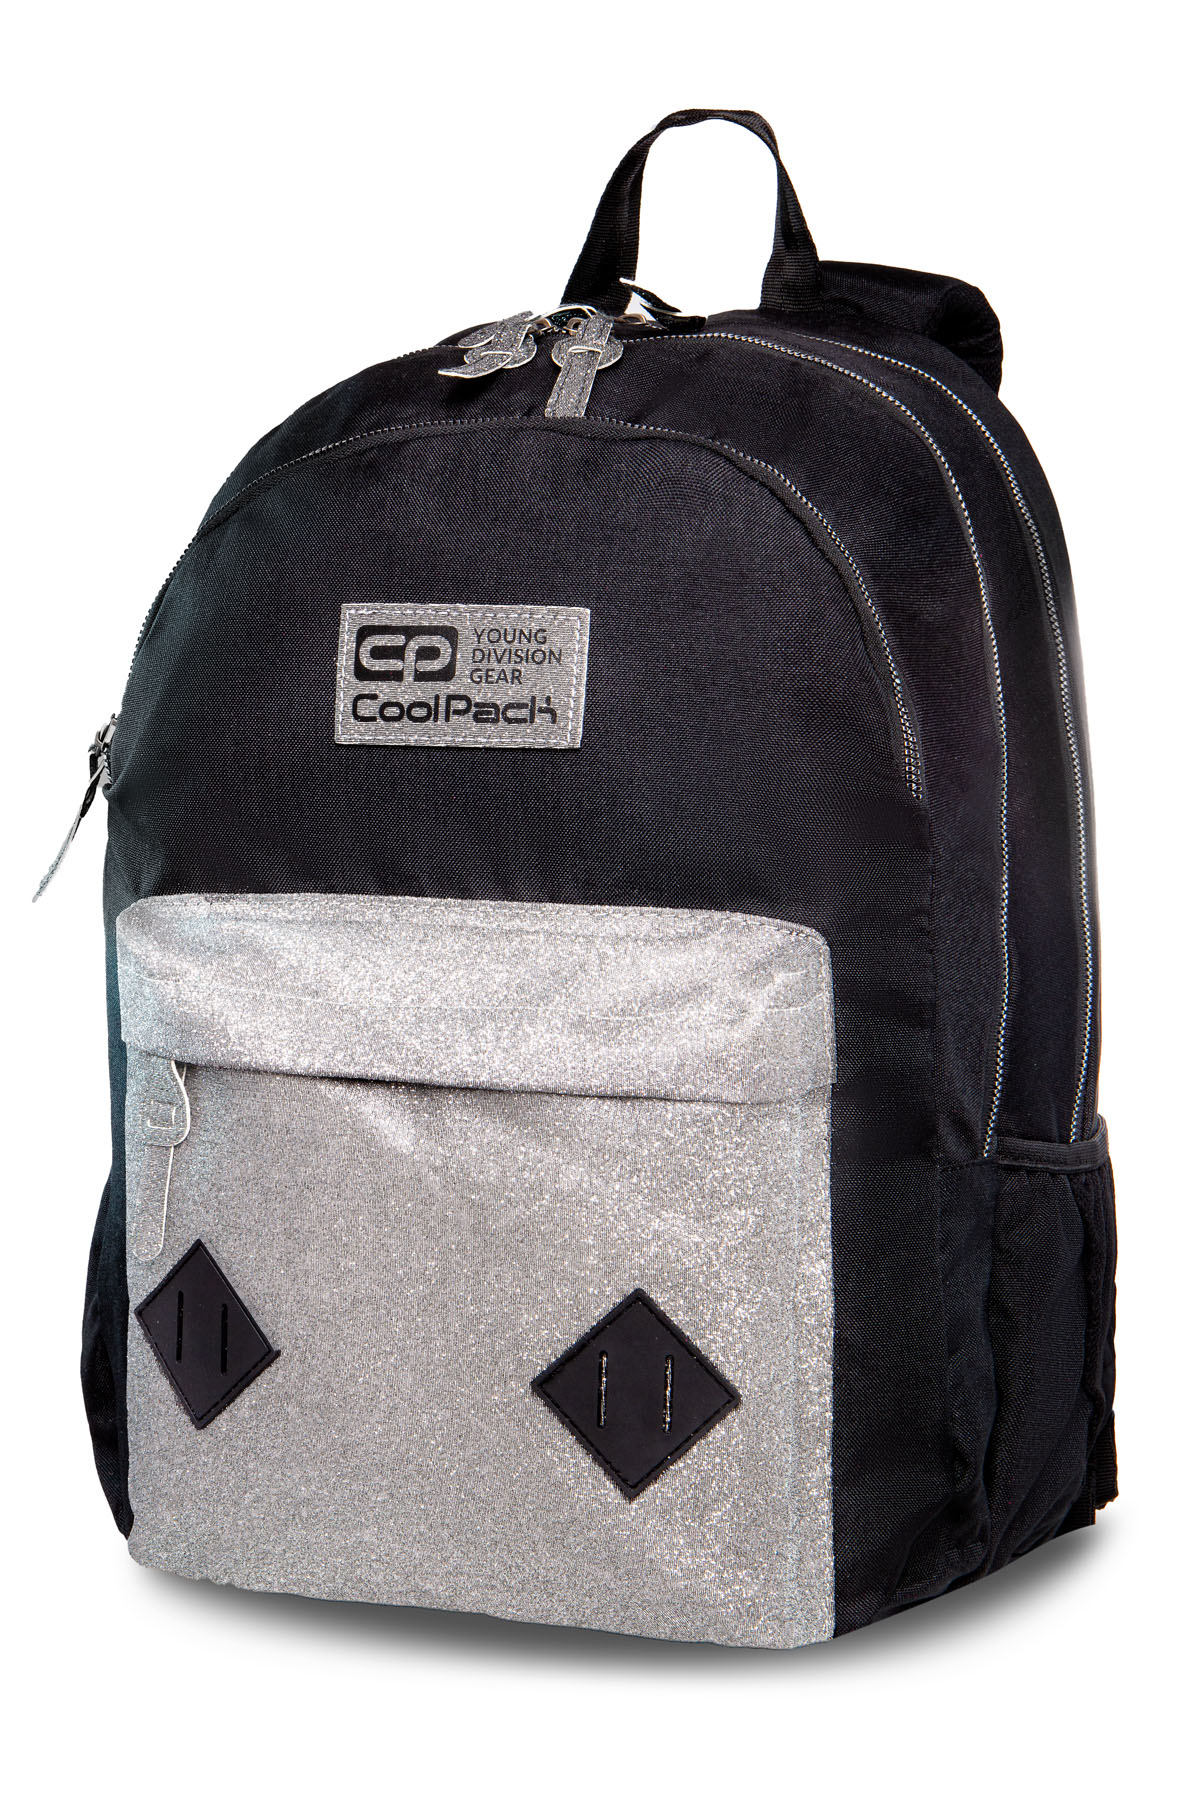 Coolpack - hippie - youth backpack - silver glitter